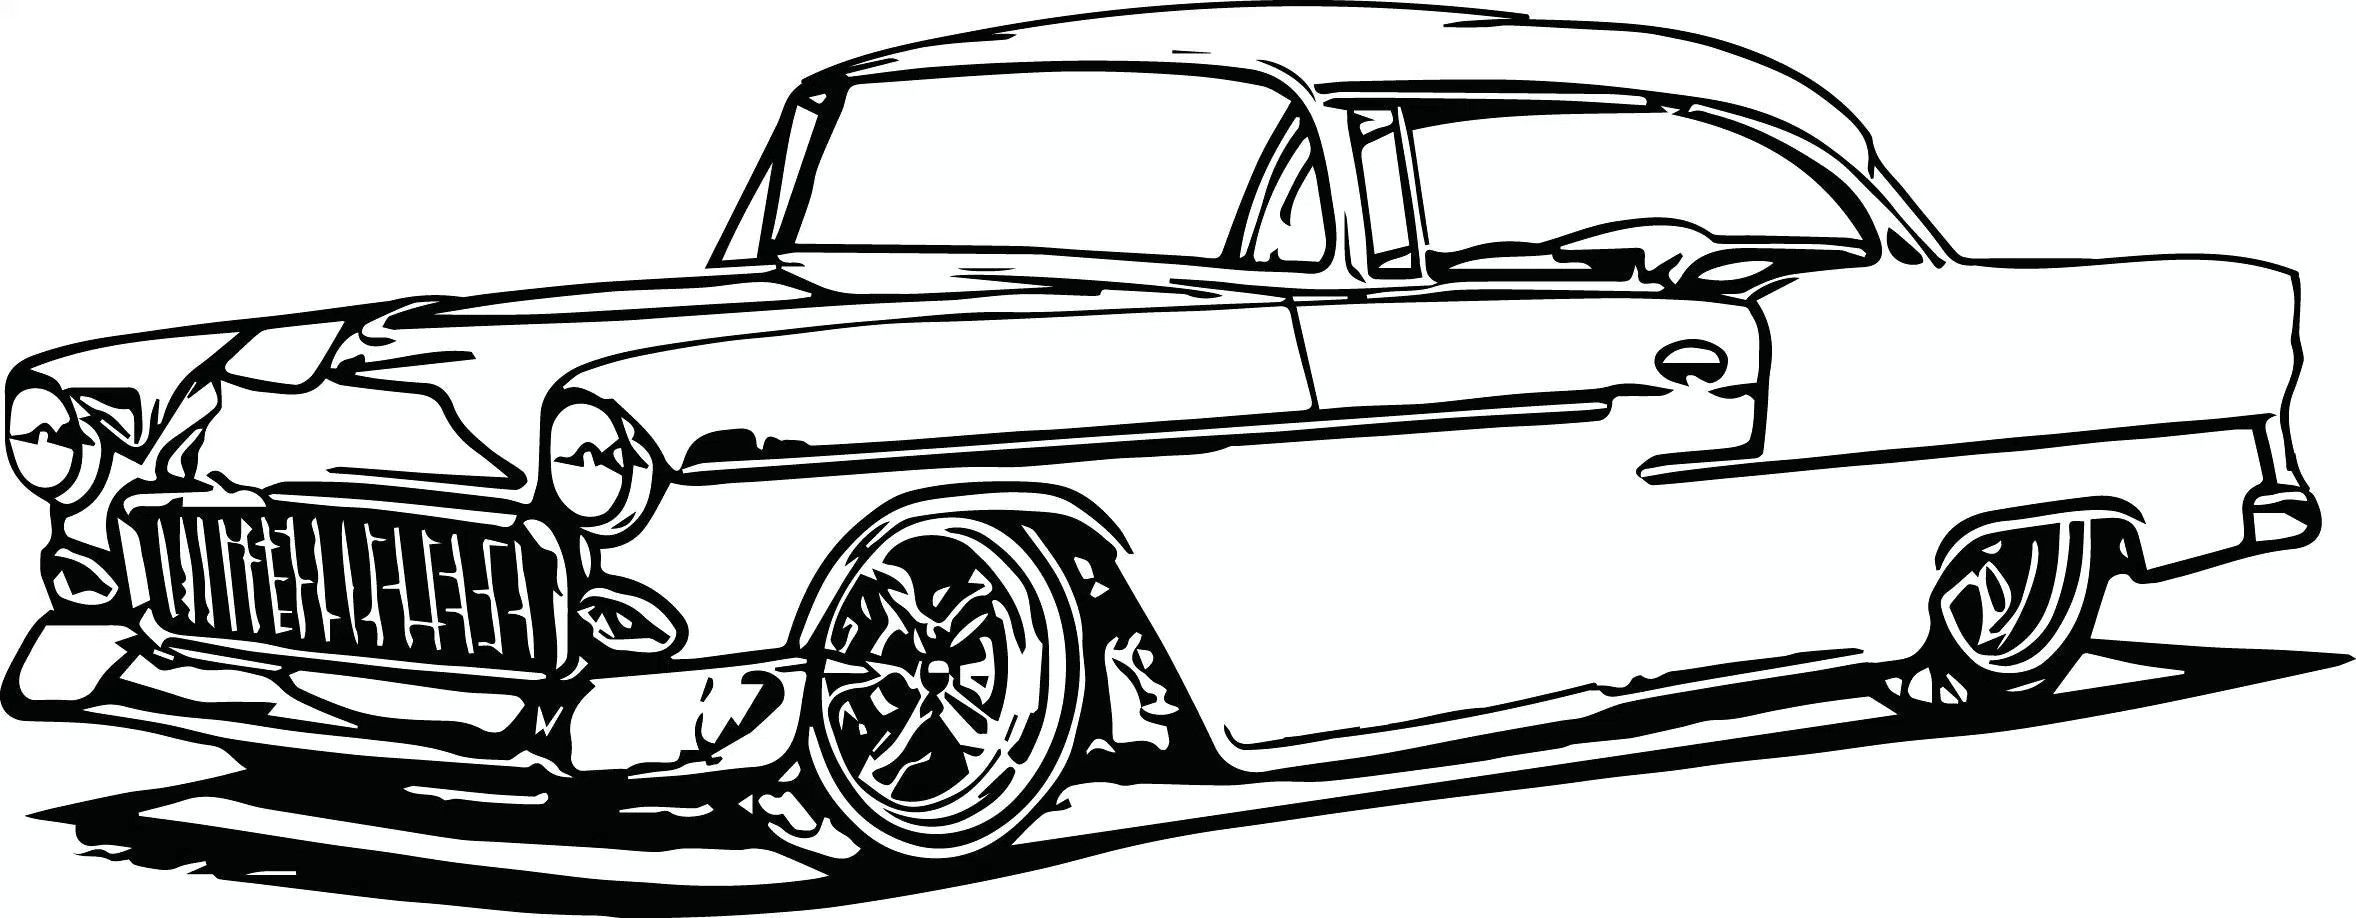 Muscle Car Coloring Pages Coloring Pages Printable Muscle Car Coloring Pages 4creative Free Entitlementtrap Com Cars Coloring Pages Old School Cars Race Car Coloring Pages